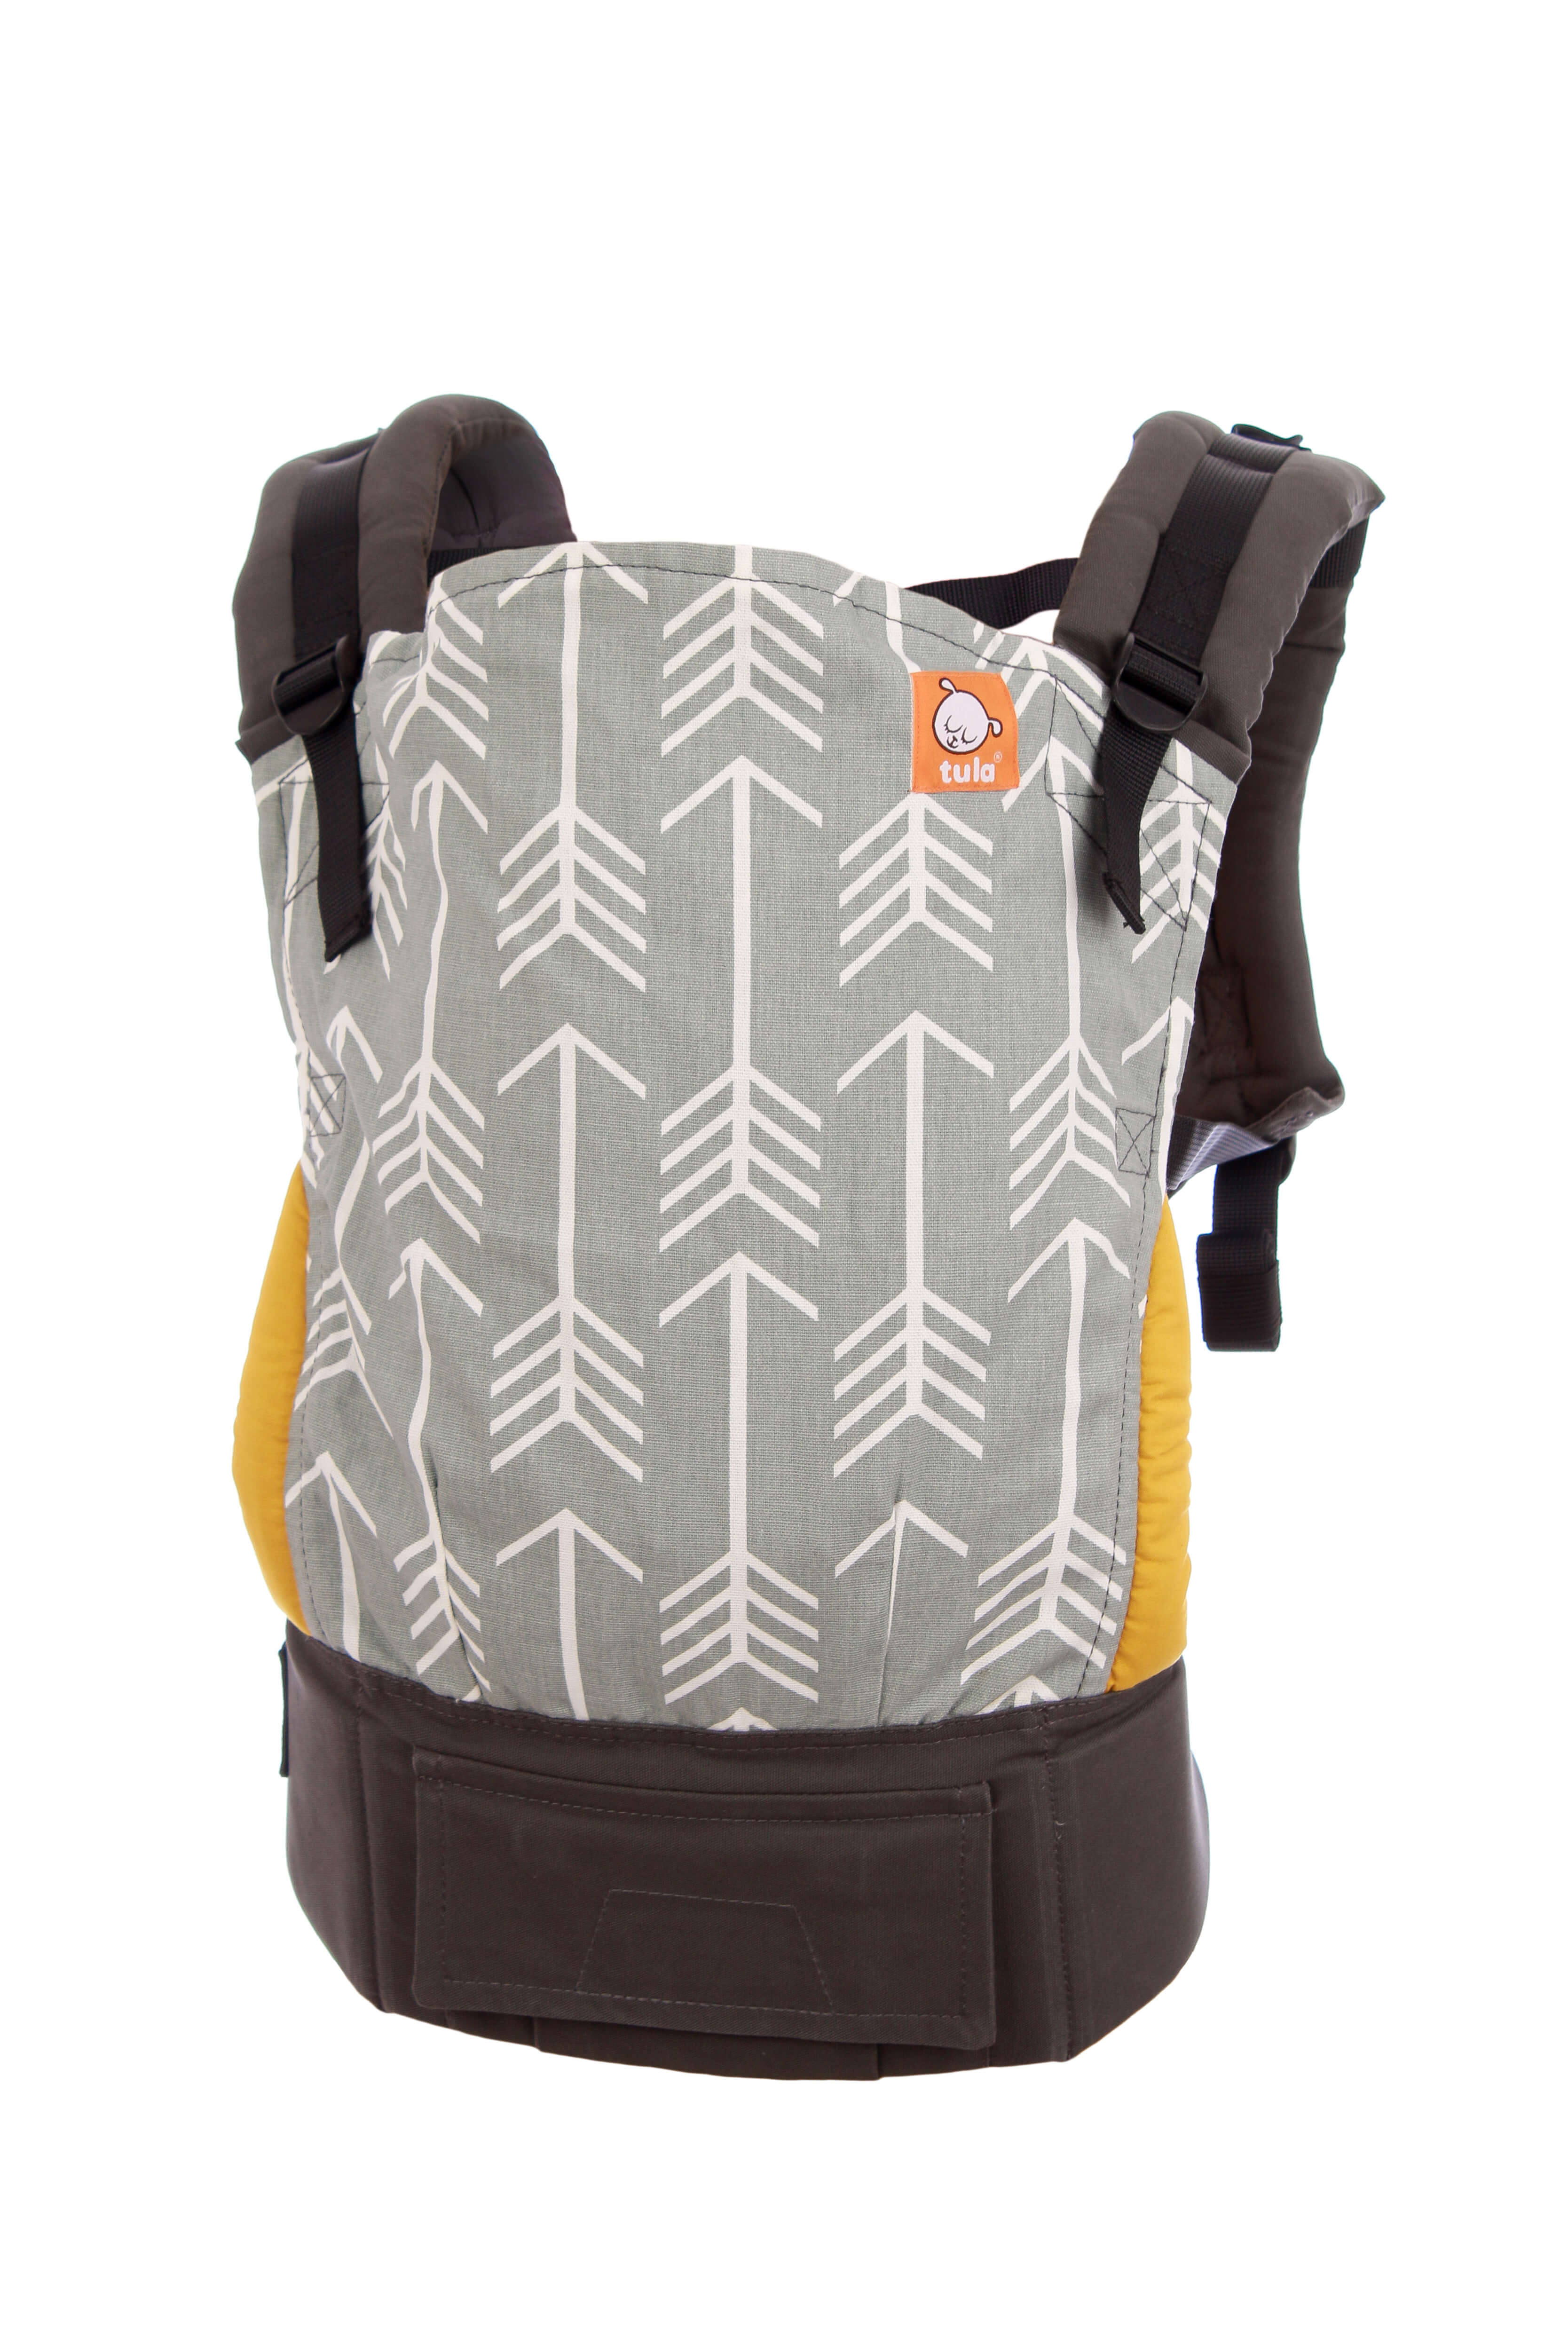 Home   All Products   Tula   Tula Standard Baby Carrier – Archer 5605a39bb85